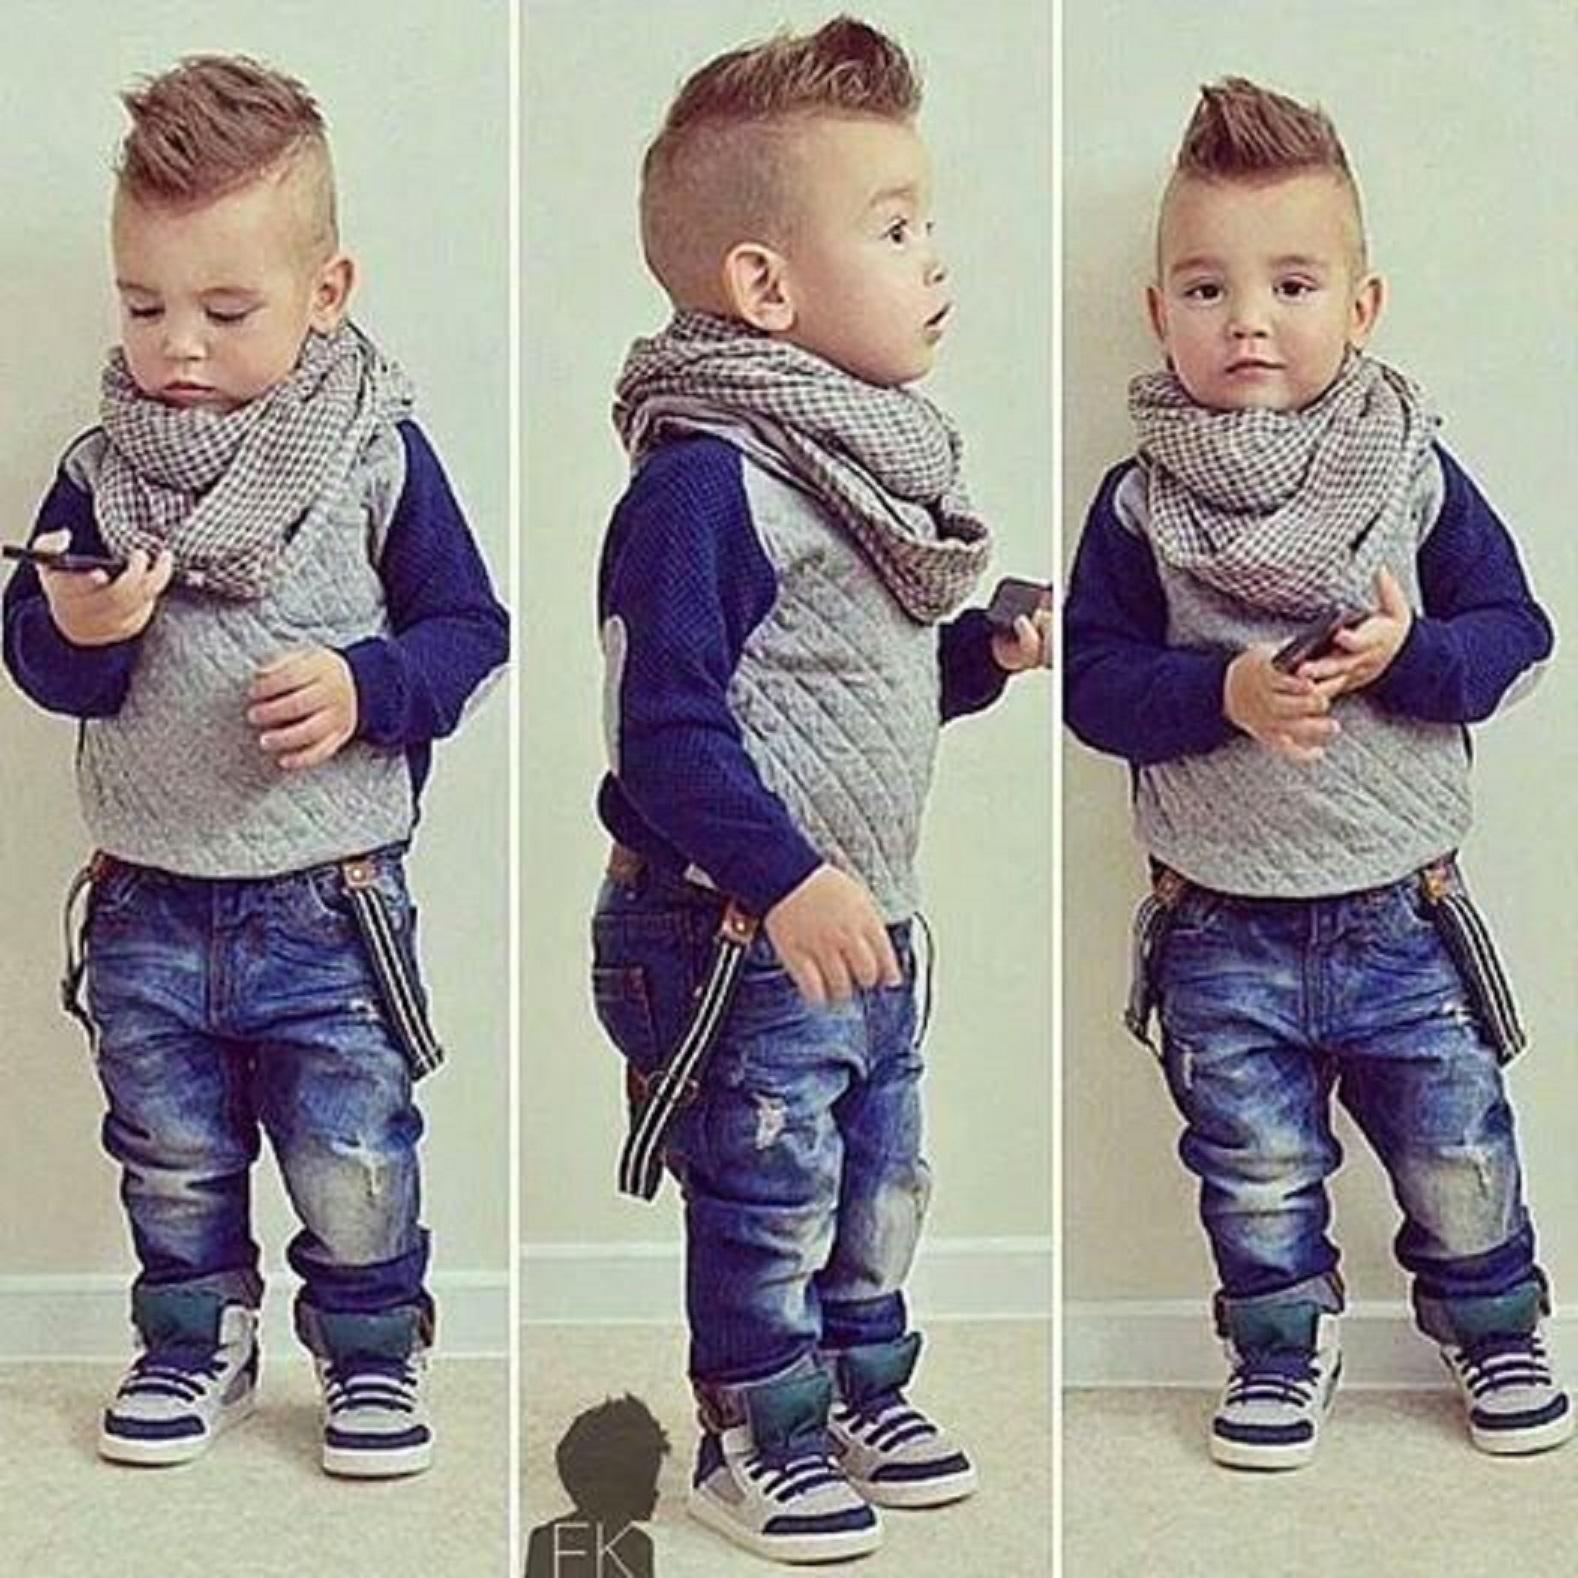 Funny Stylish Kids Boy Very Cool Hair Love The Scarf And Suspenders - Cool hairstyle for toddler boy